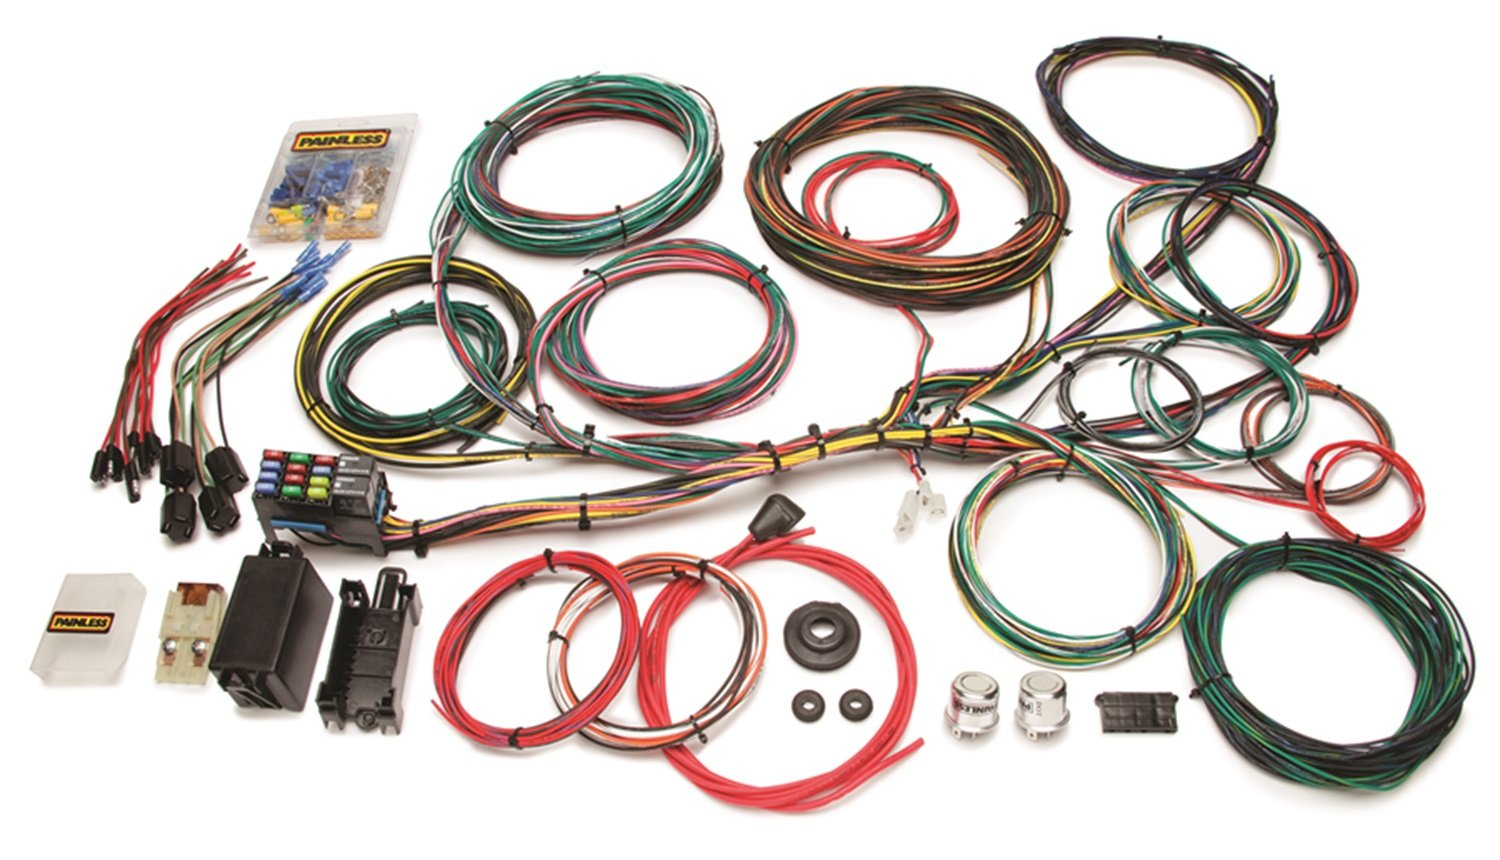 painless wiring ford 5 0 all wiring diagram 86 5 0 Injector Harness painless wiring harness mustang 5 0 wiring diagrams panle truck painless wiring painless wiring ford 5 0